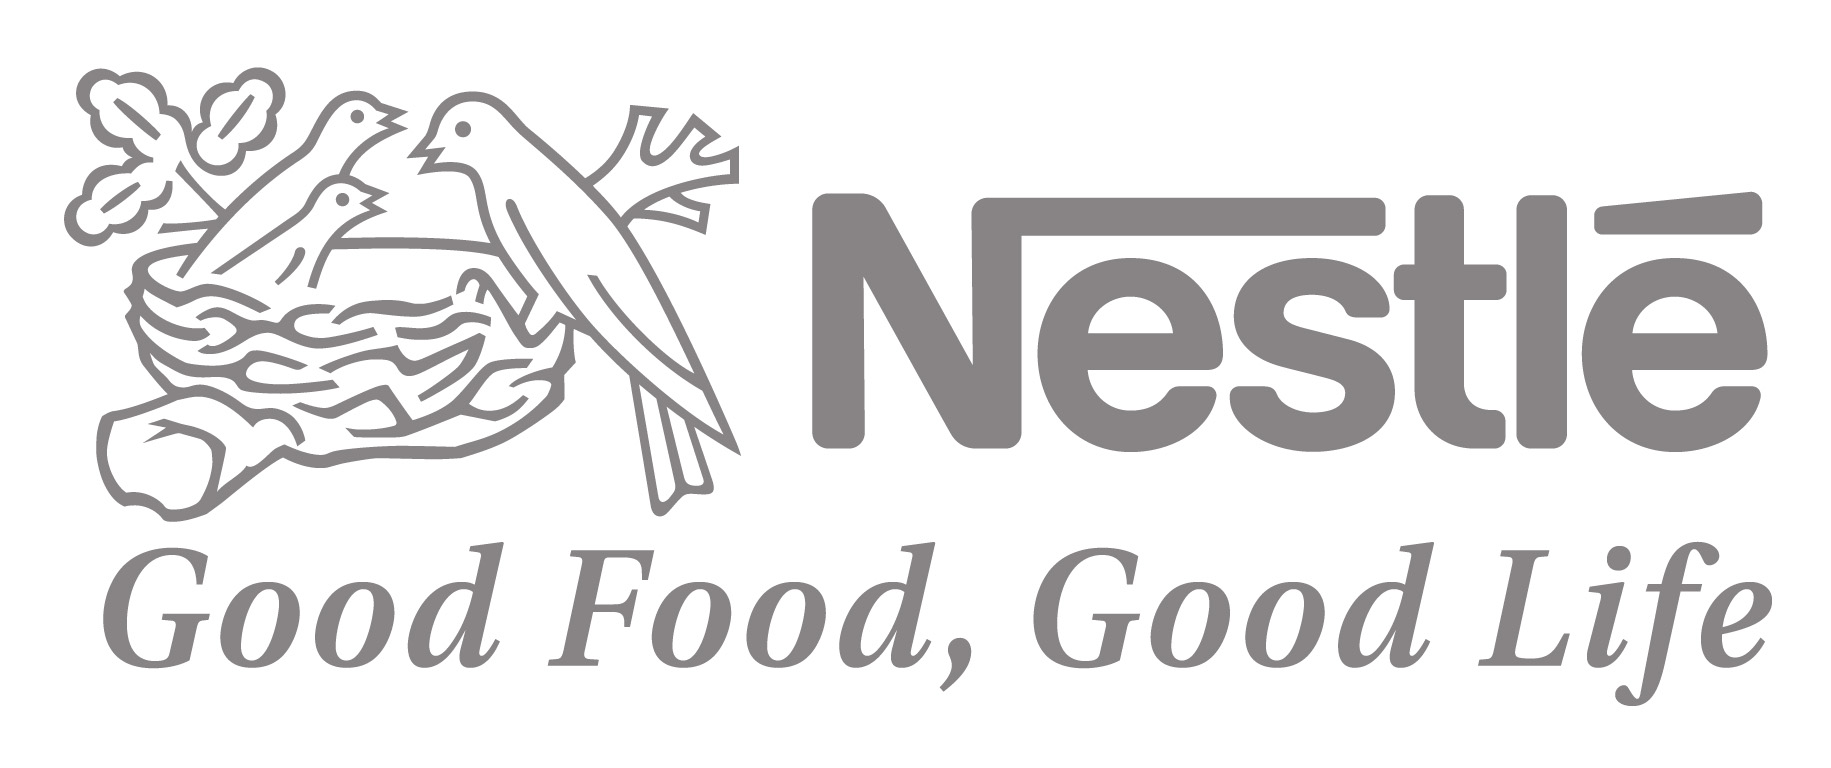 Nestle Nine Month Sales 3 1 Weak Spending Negative Foreign Exchange Take Heavy Toll together with Pruning together with Ewtn 70279 also Die Uhr Fuer Den Anwalt Billable Hour Watch T173659 moreover Speed of sound. on fell down